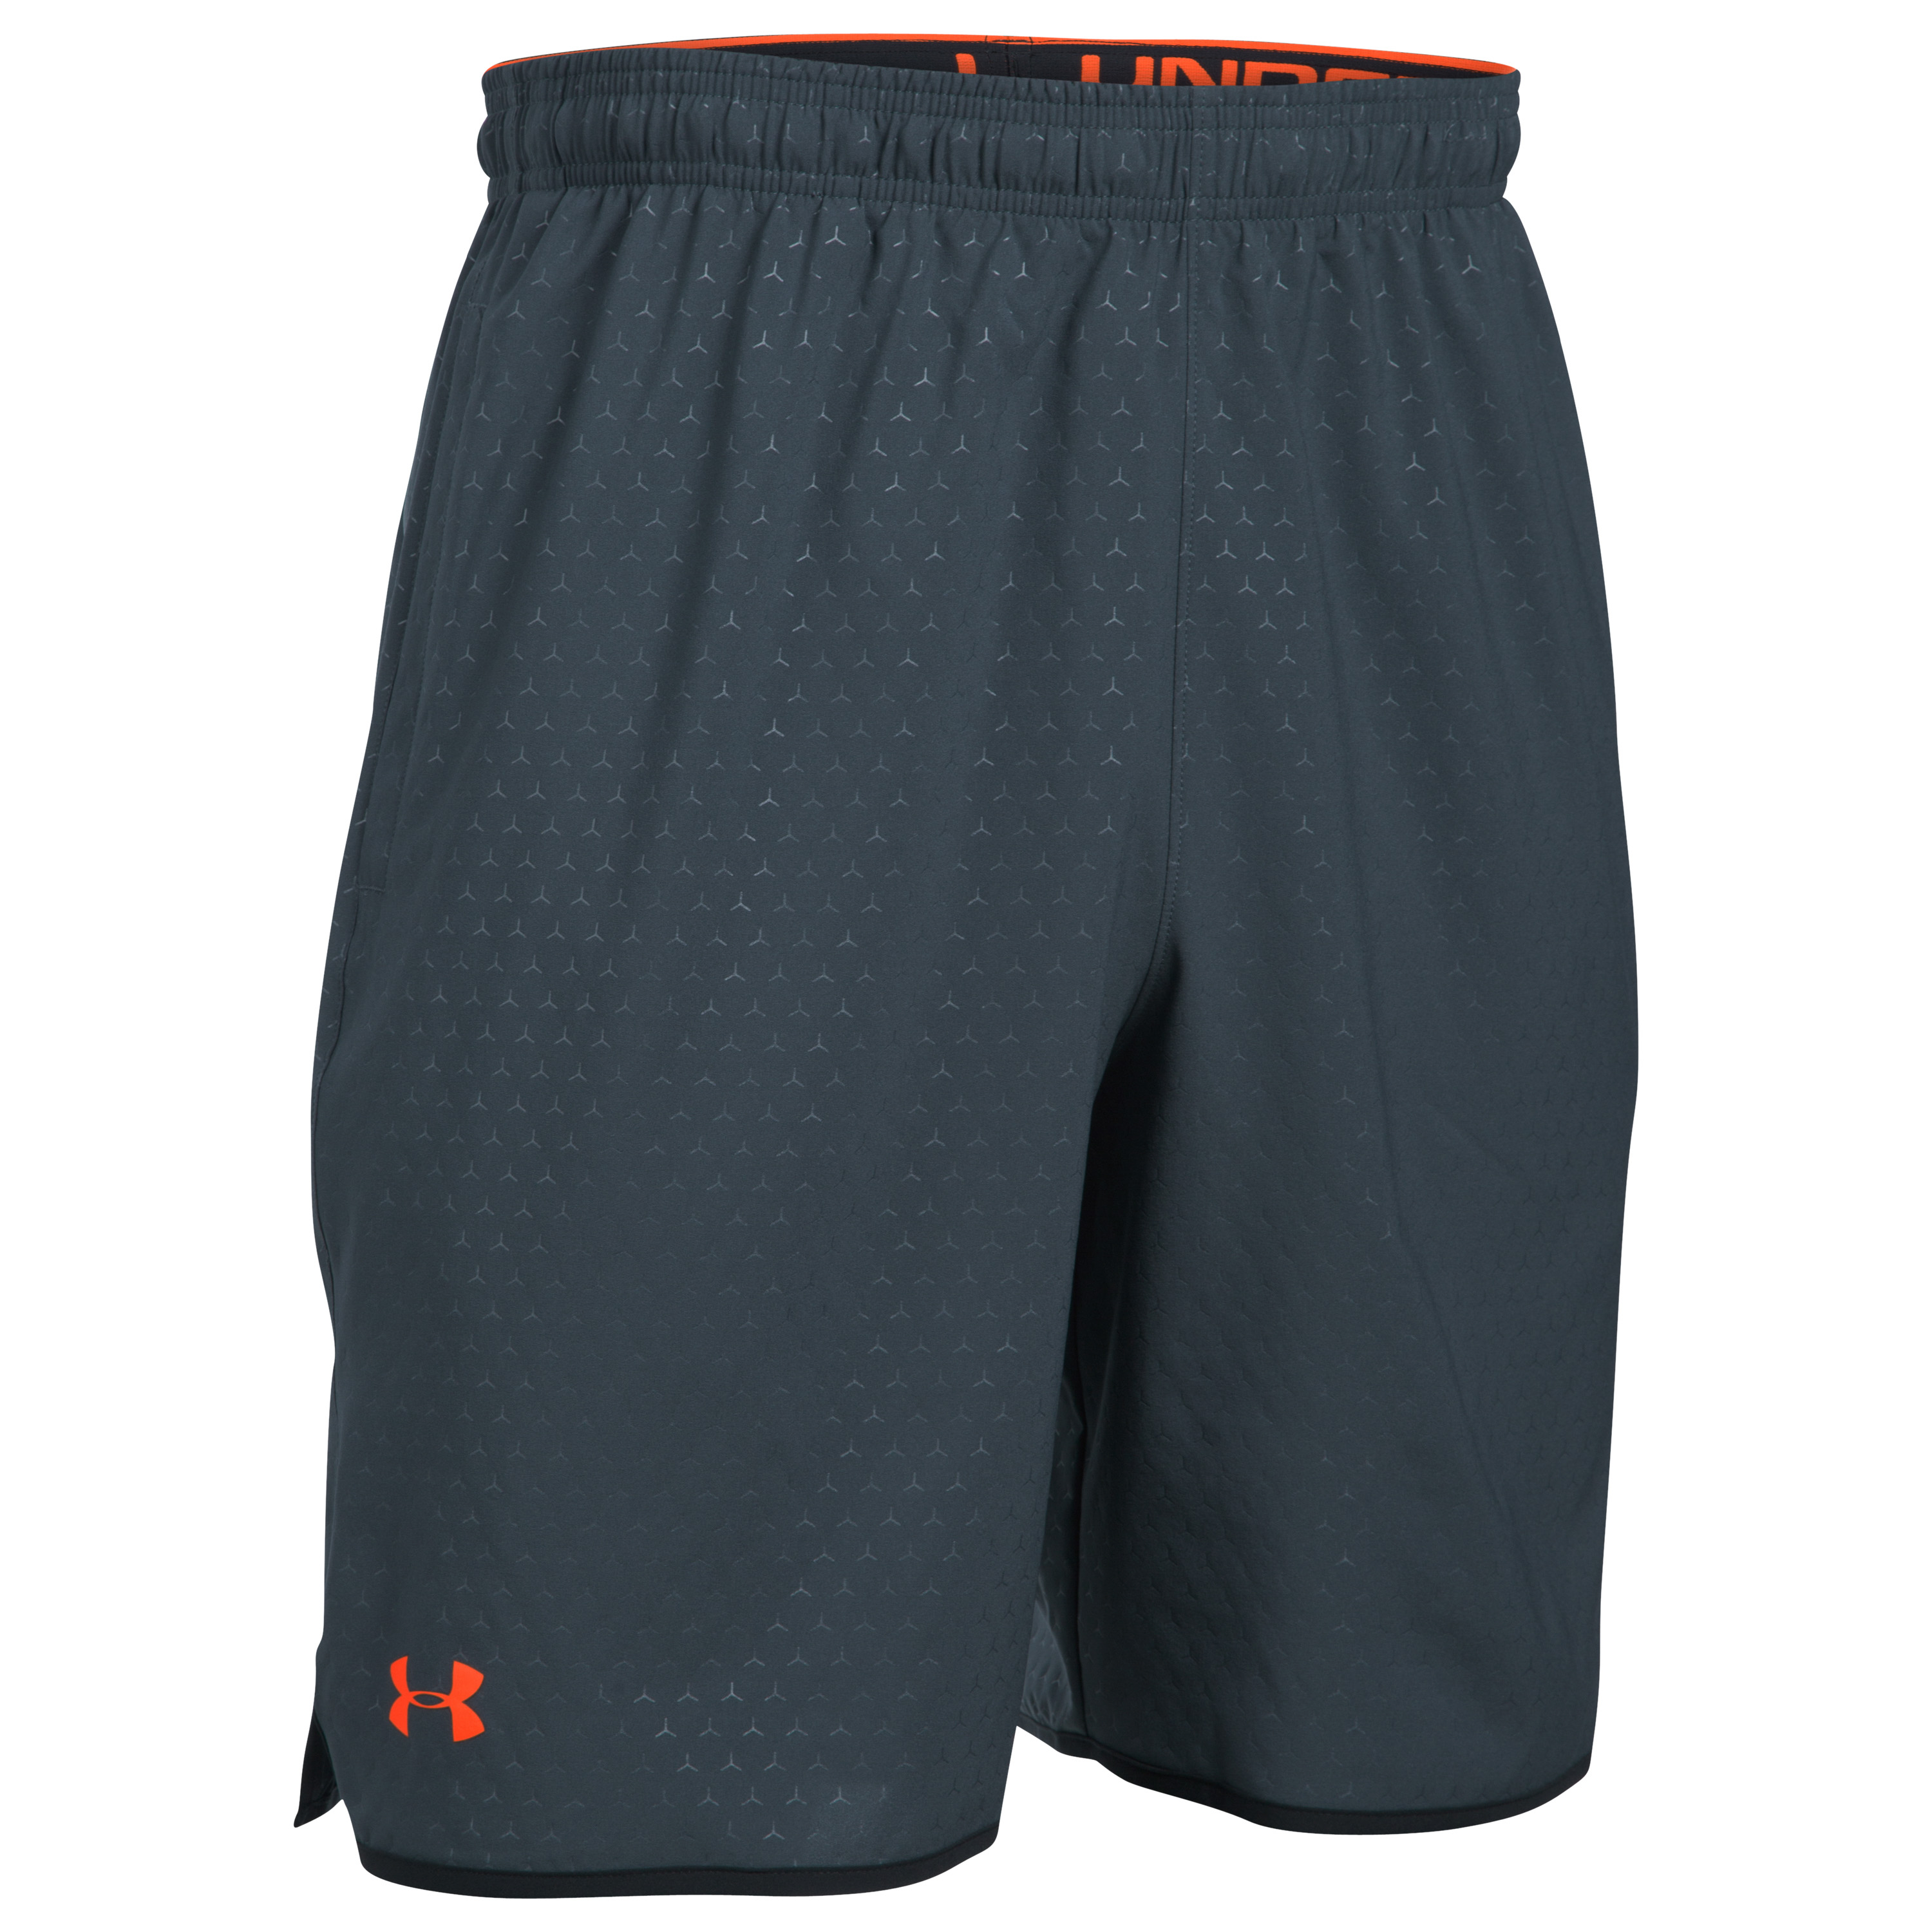 Under Armour Fitness Short Qualifier Novelty grau